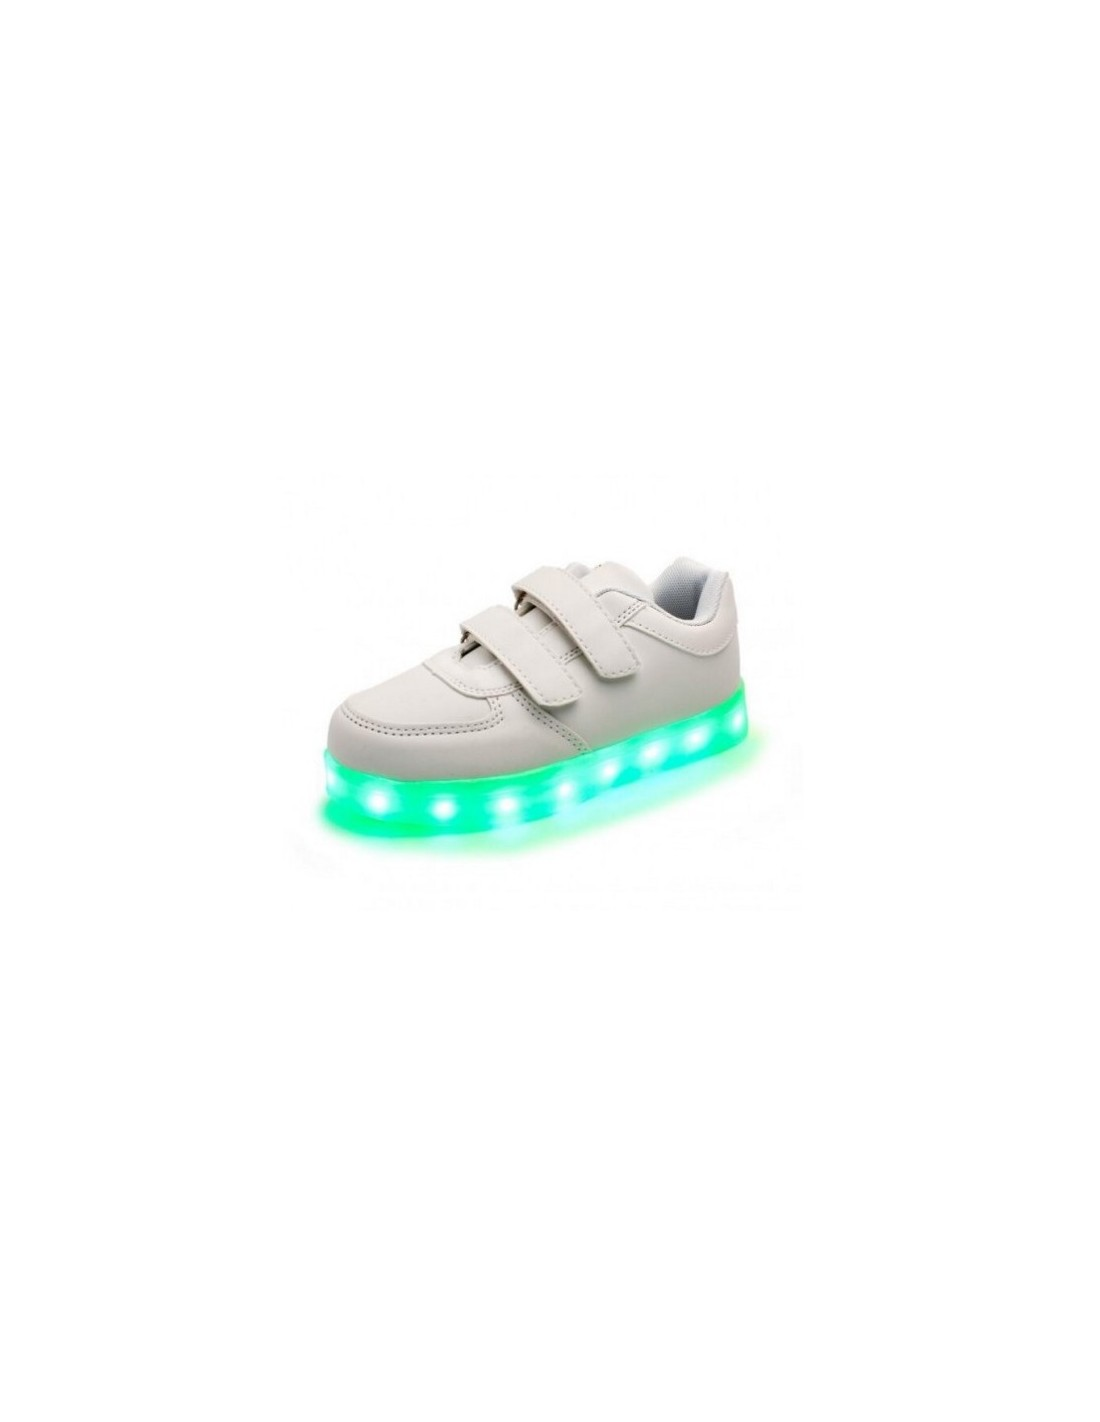 Blanche Chaussure Blanche Scratch Led Chaussure Led Scratch Chaussure ynm8wPvN0O